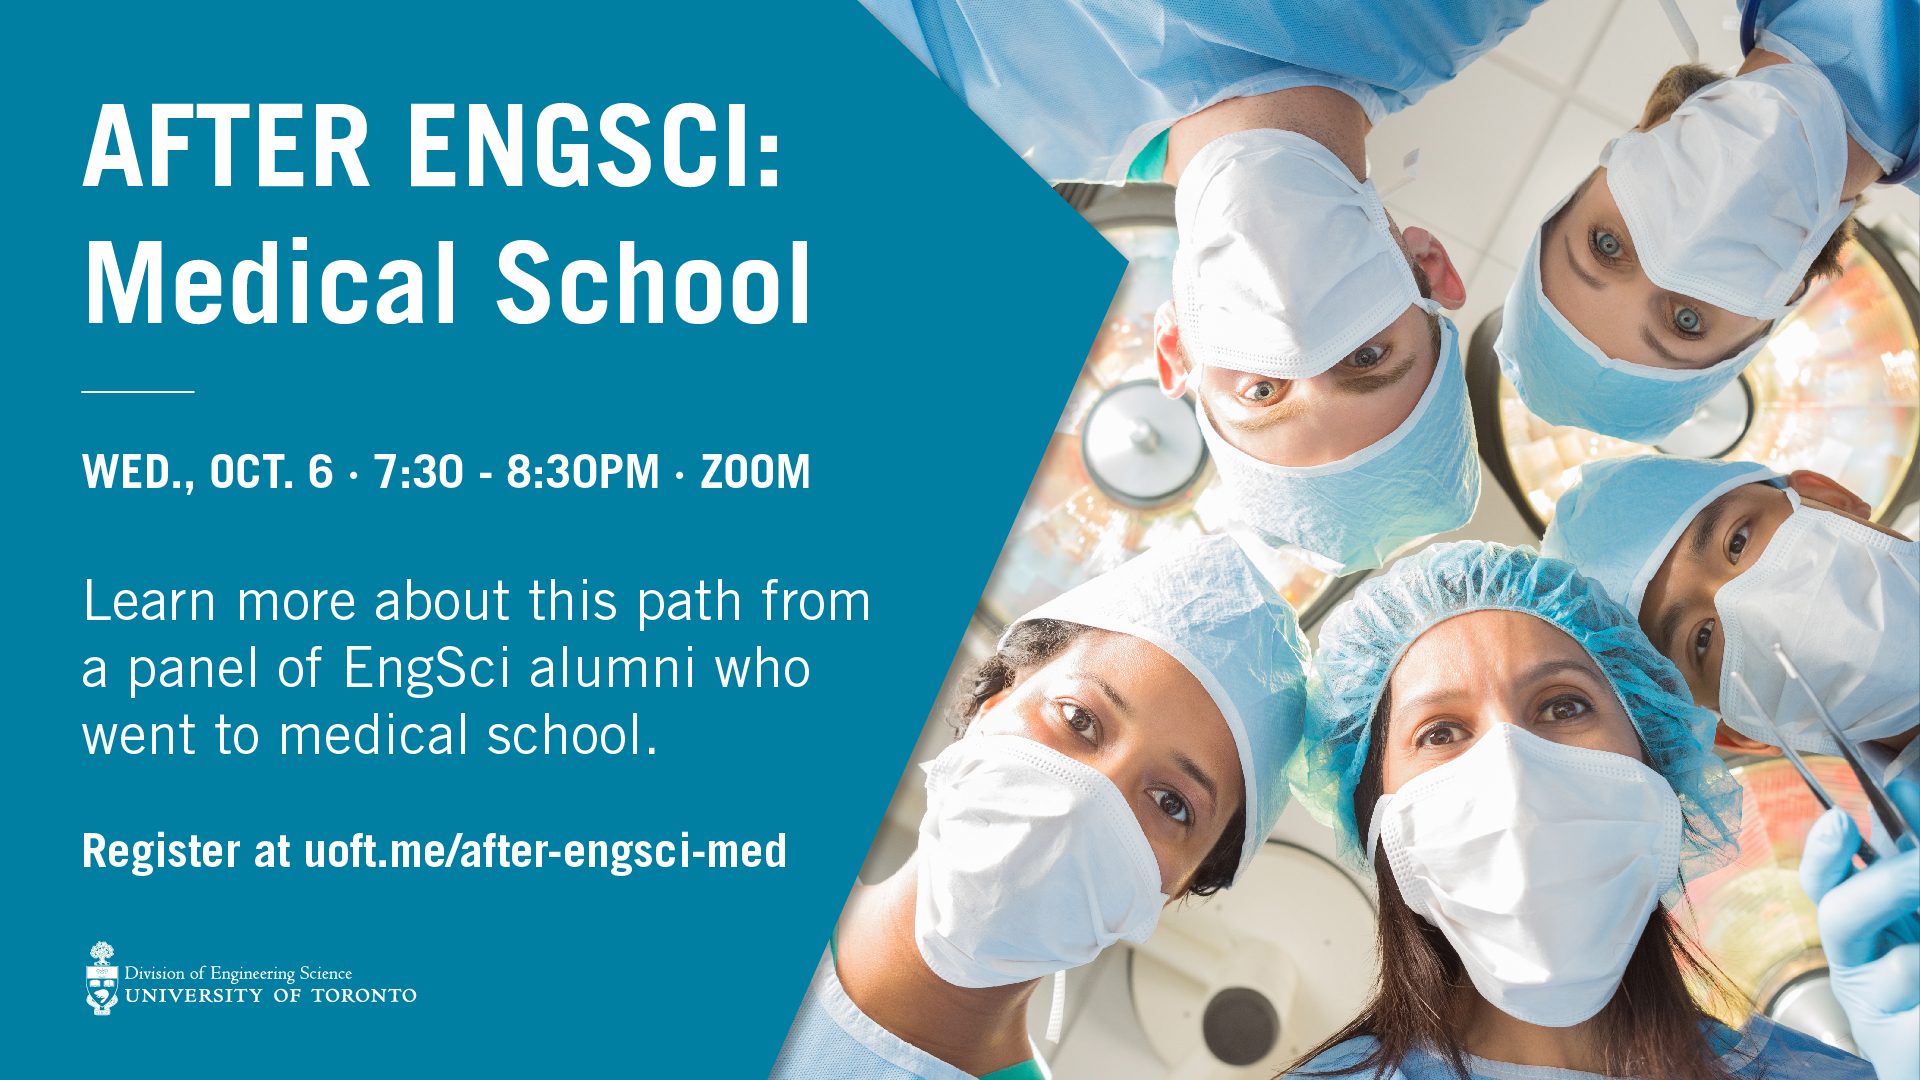 After EngSci: Medical School, Wed., Oct. 6, 7:30 pm, Zoom